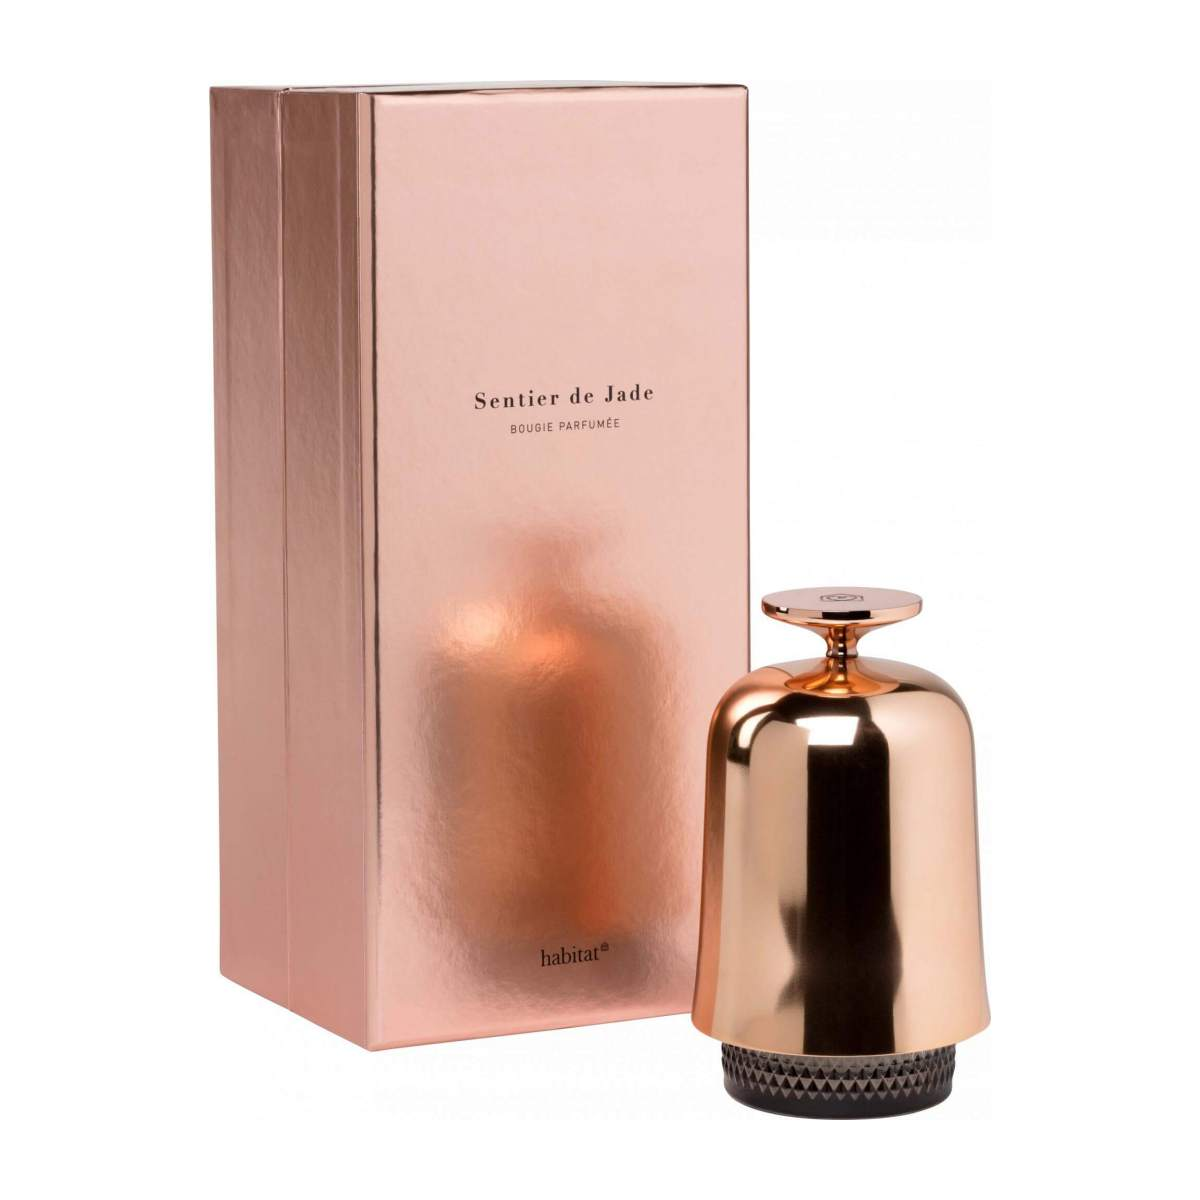 Jade scented candle gift set n°2